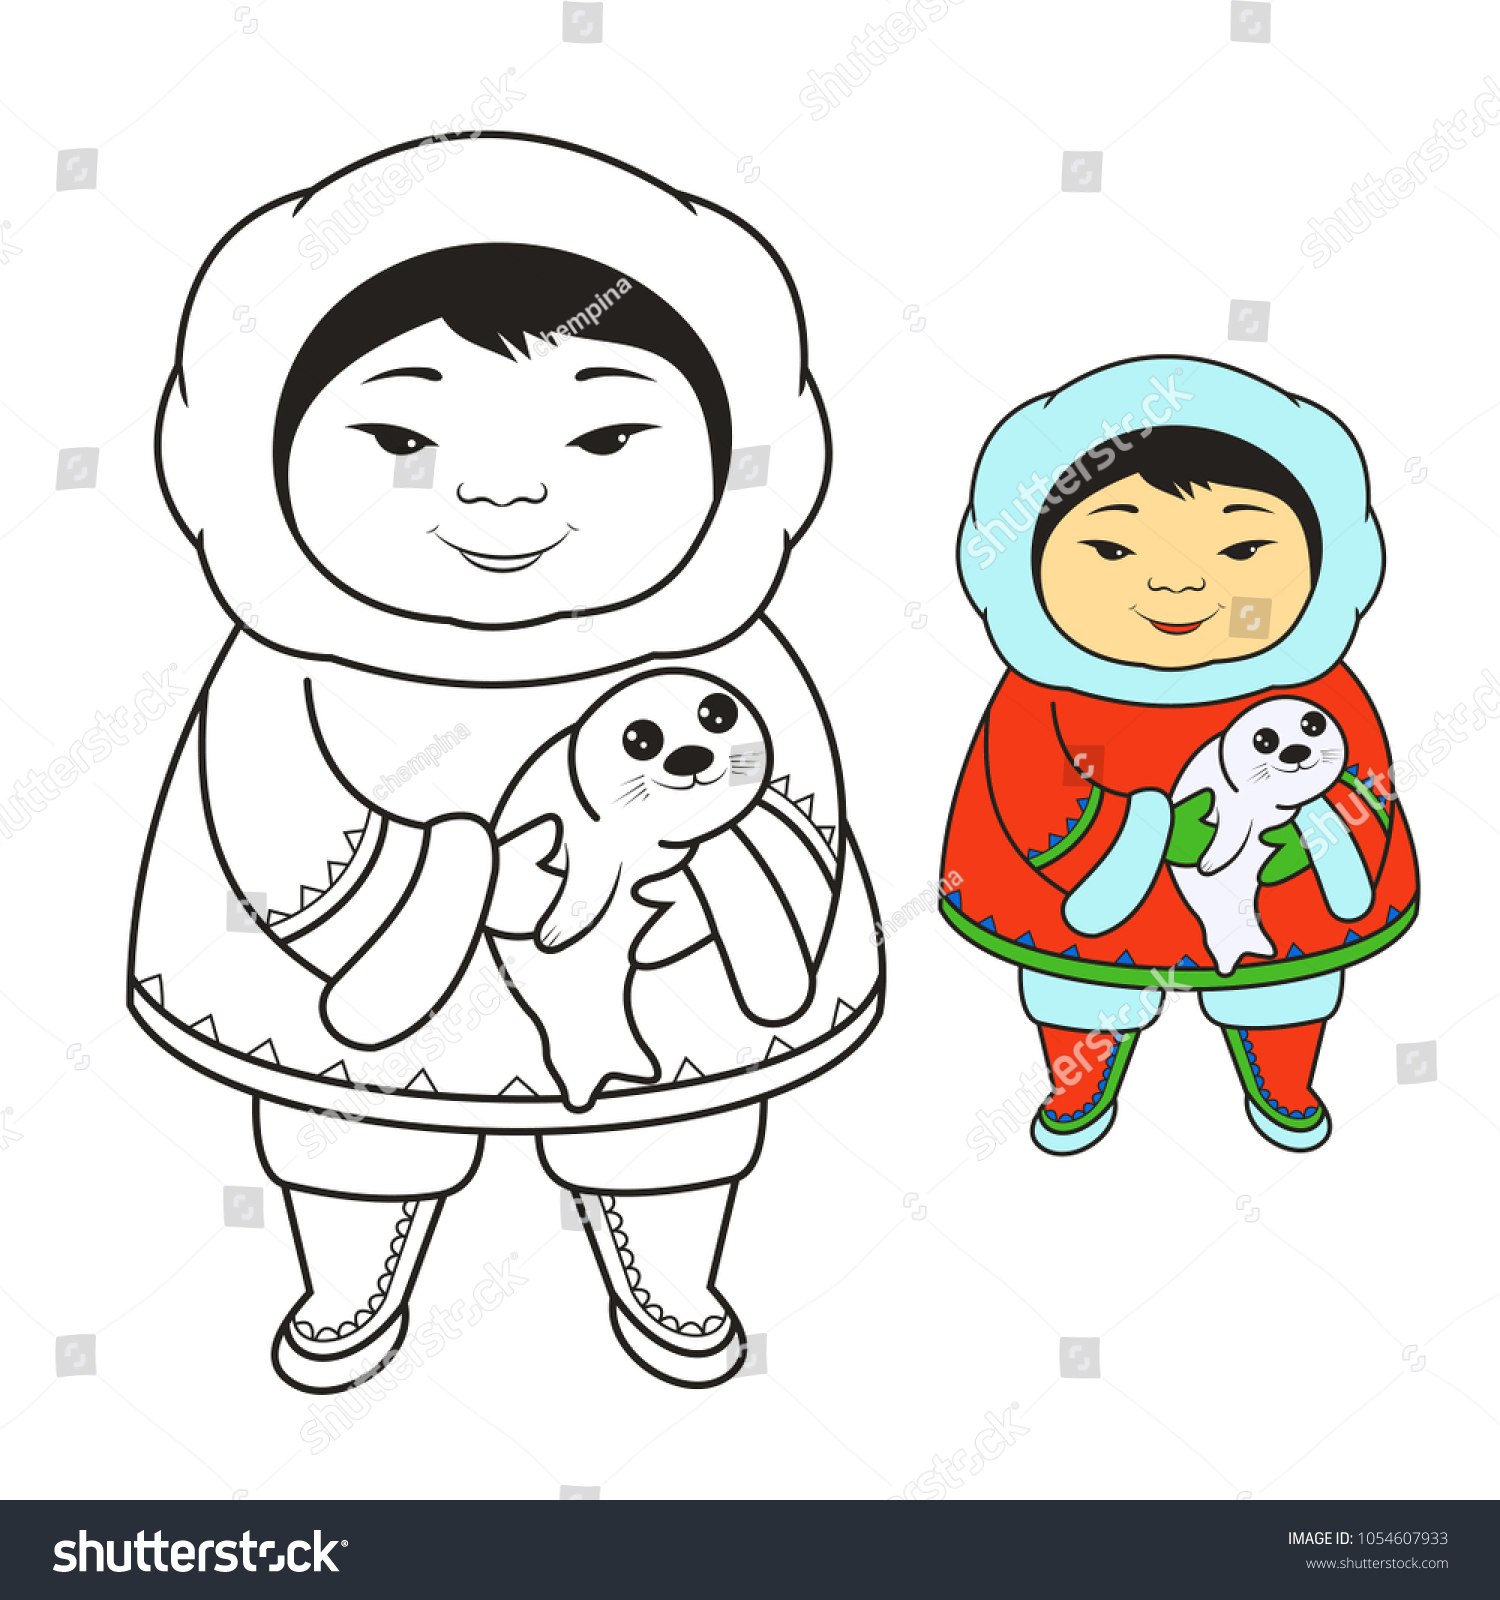 Cute Eskimo Baby Seal Coloring Book Pages Stock Vector (Royalty Free ...